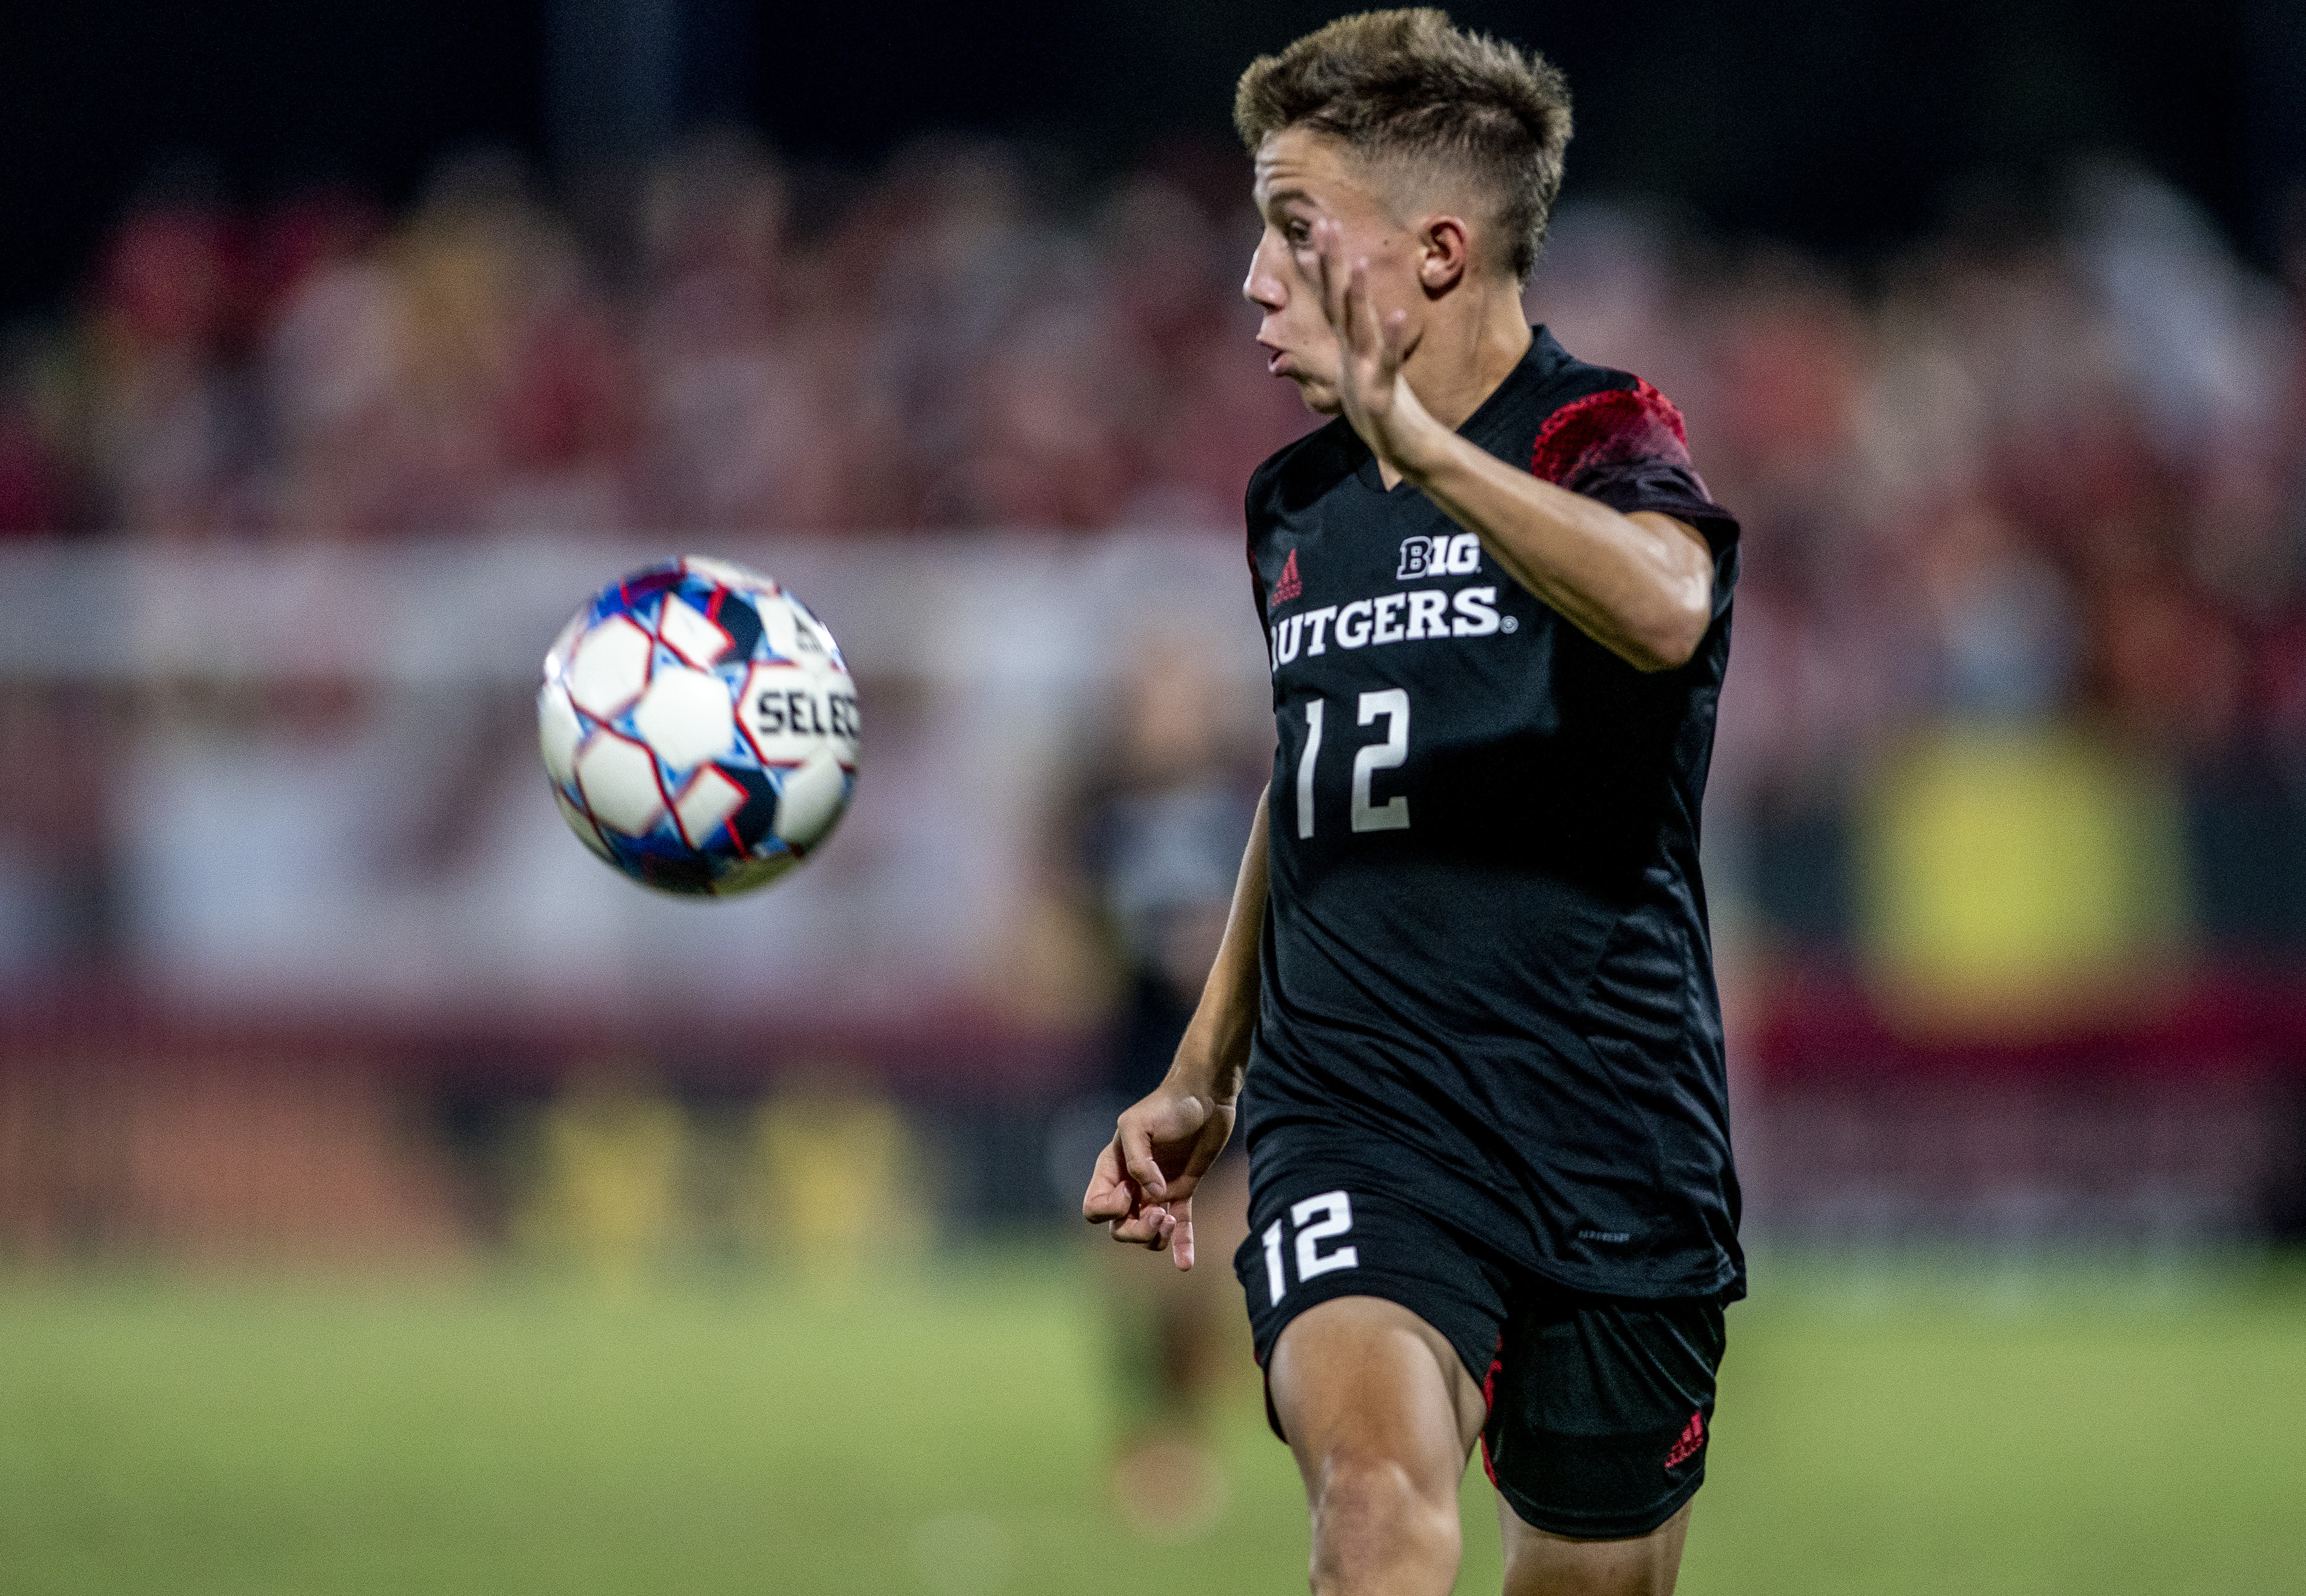 COLLEGE SOCCER: SEP 28 Rutgers at Maryland